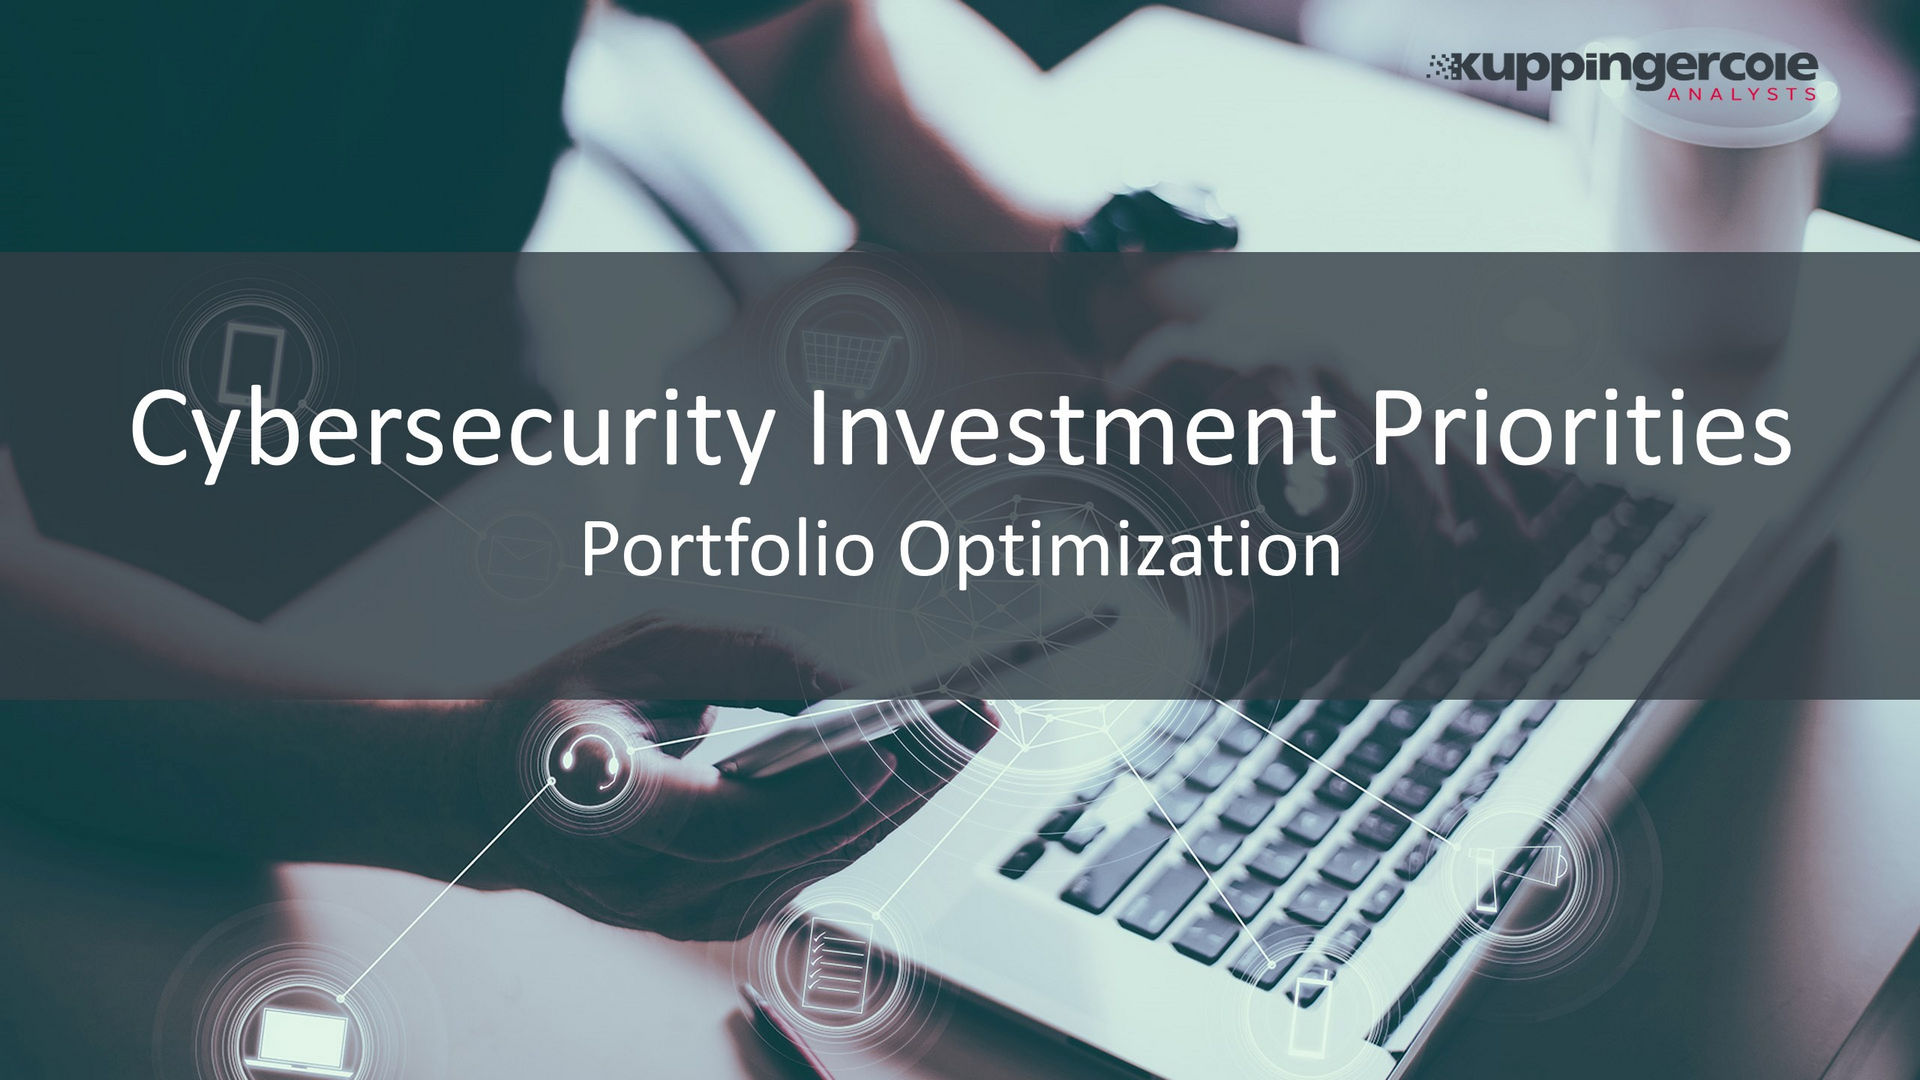 Cybersecurity Investment Priorities - Portfolio Optimization